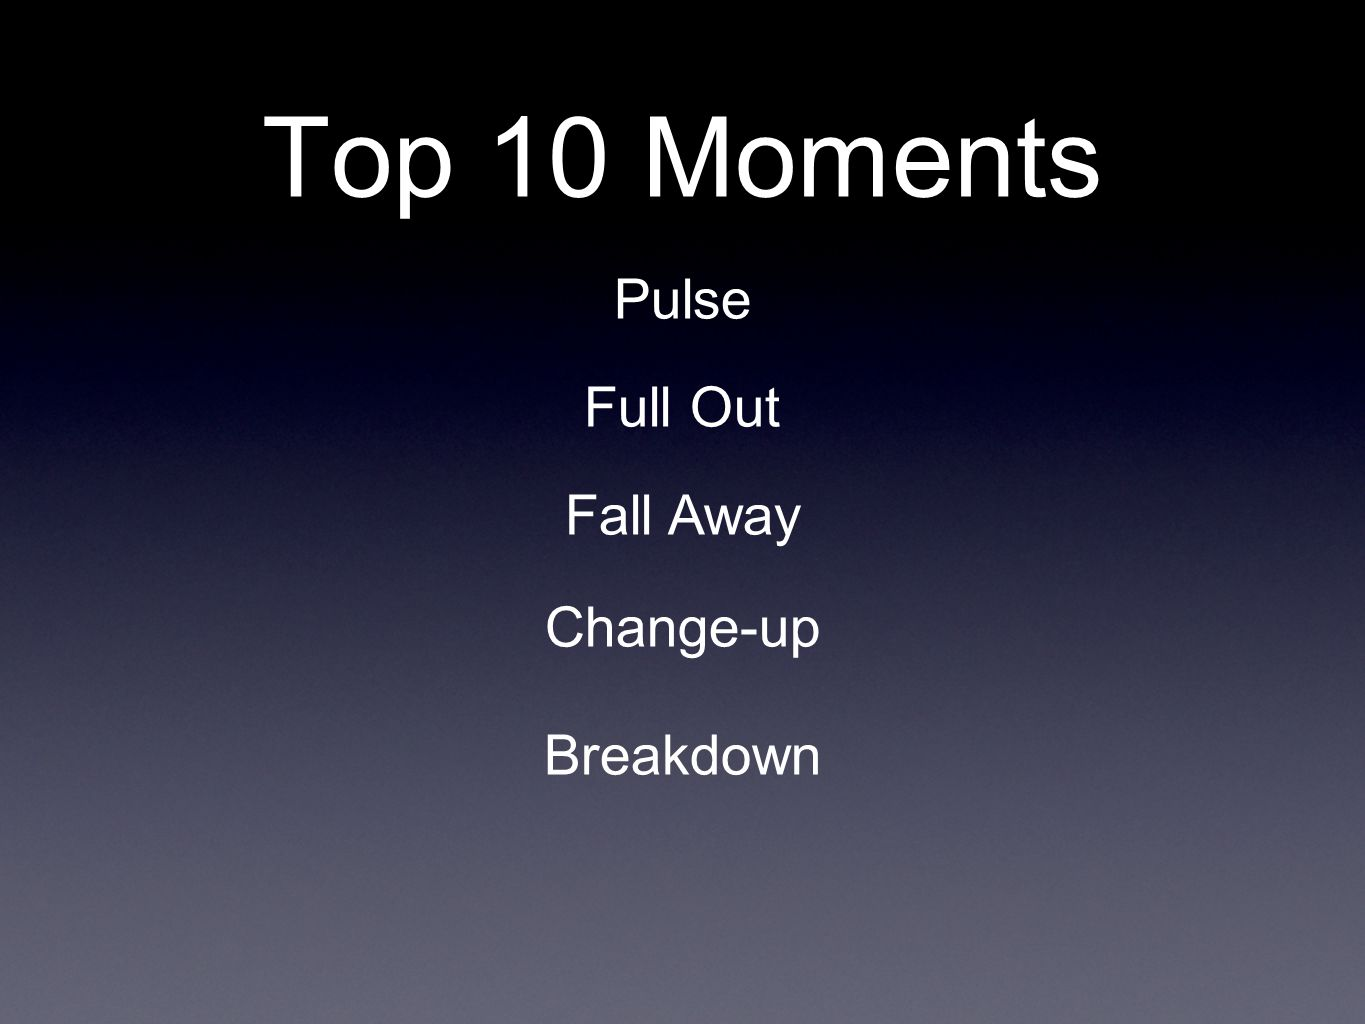 Top 10 Moments Pulse Full Out Fall Away Change-up Breakdown